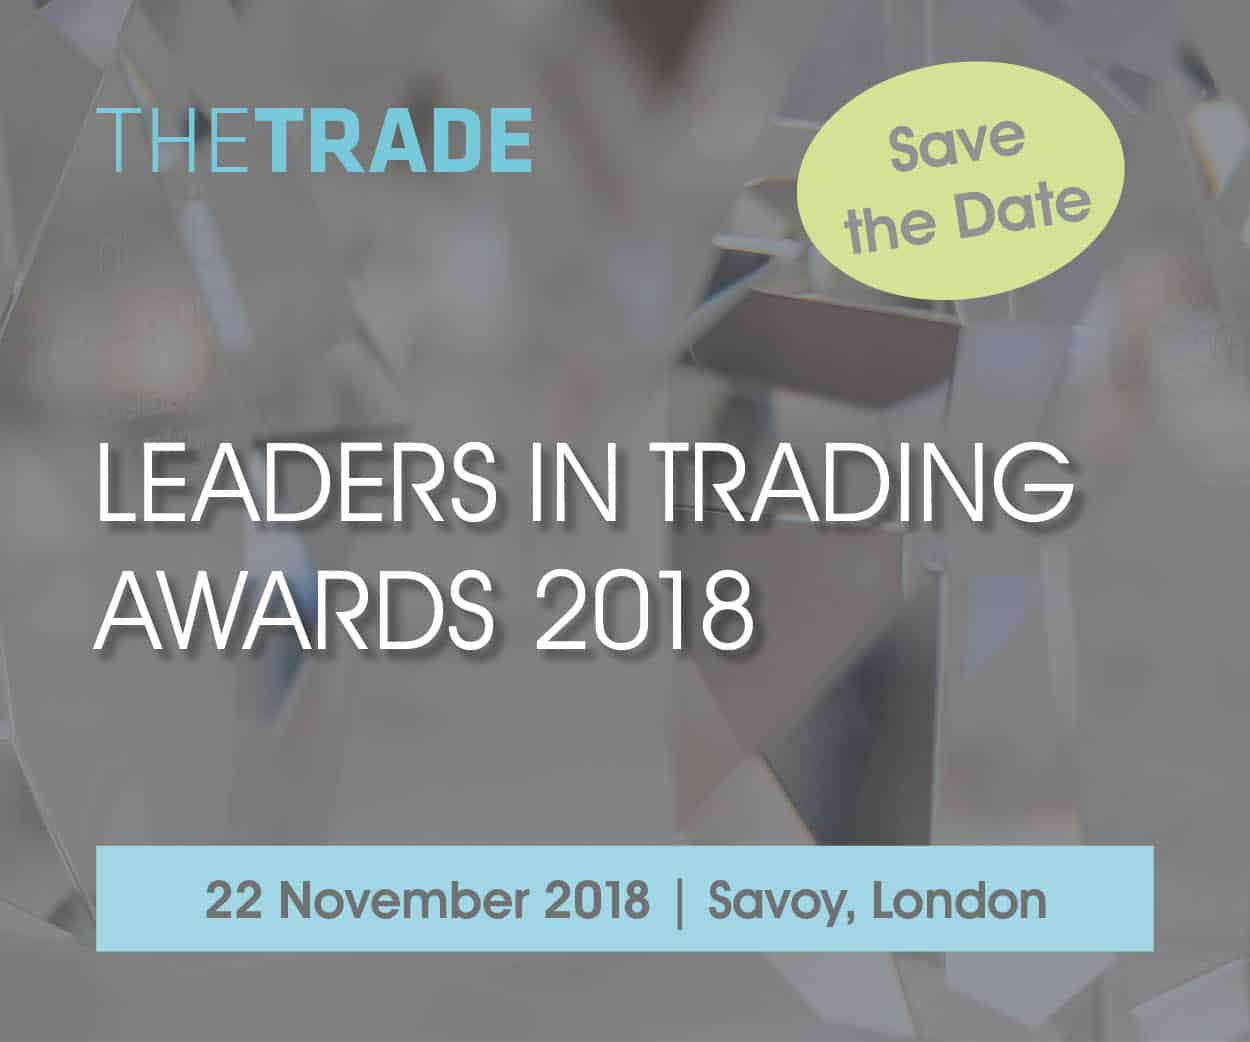 Leaders in Trading 2018 - The TRADE